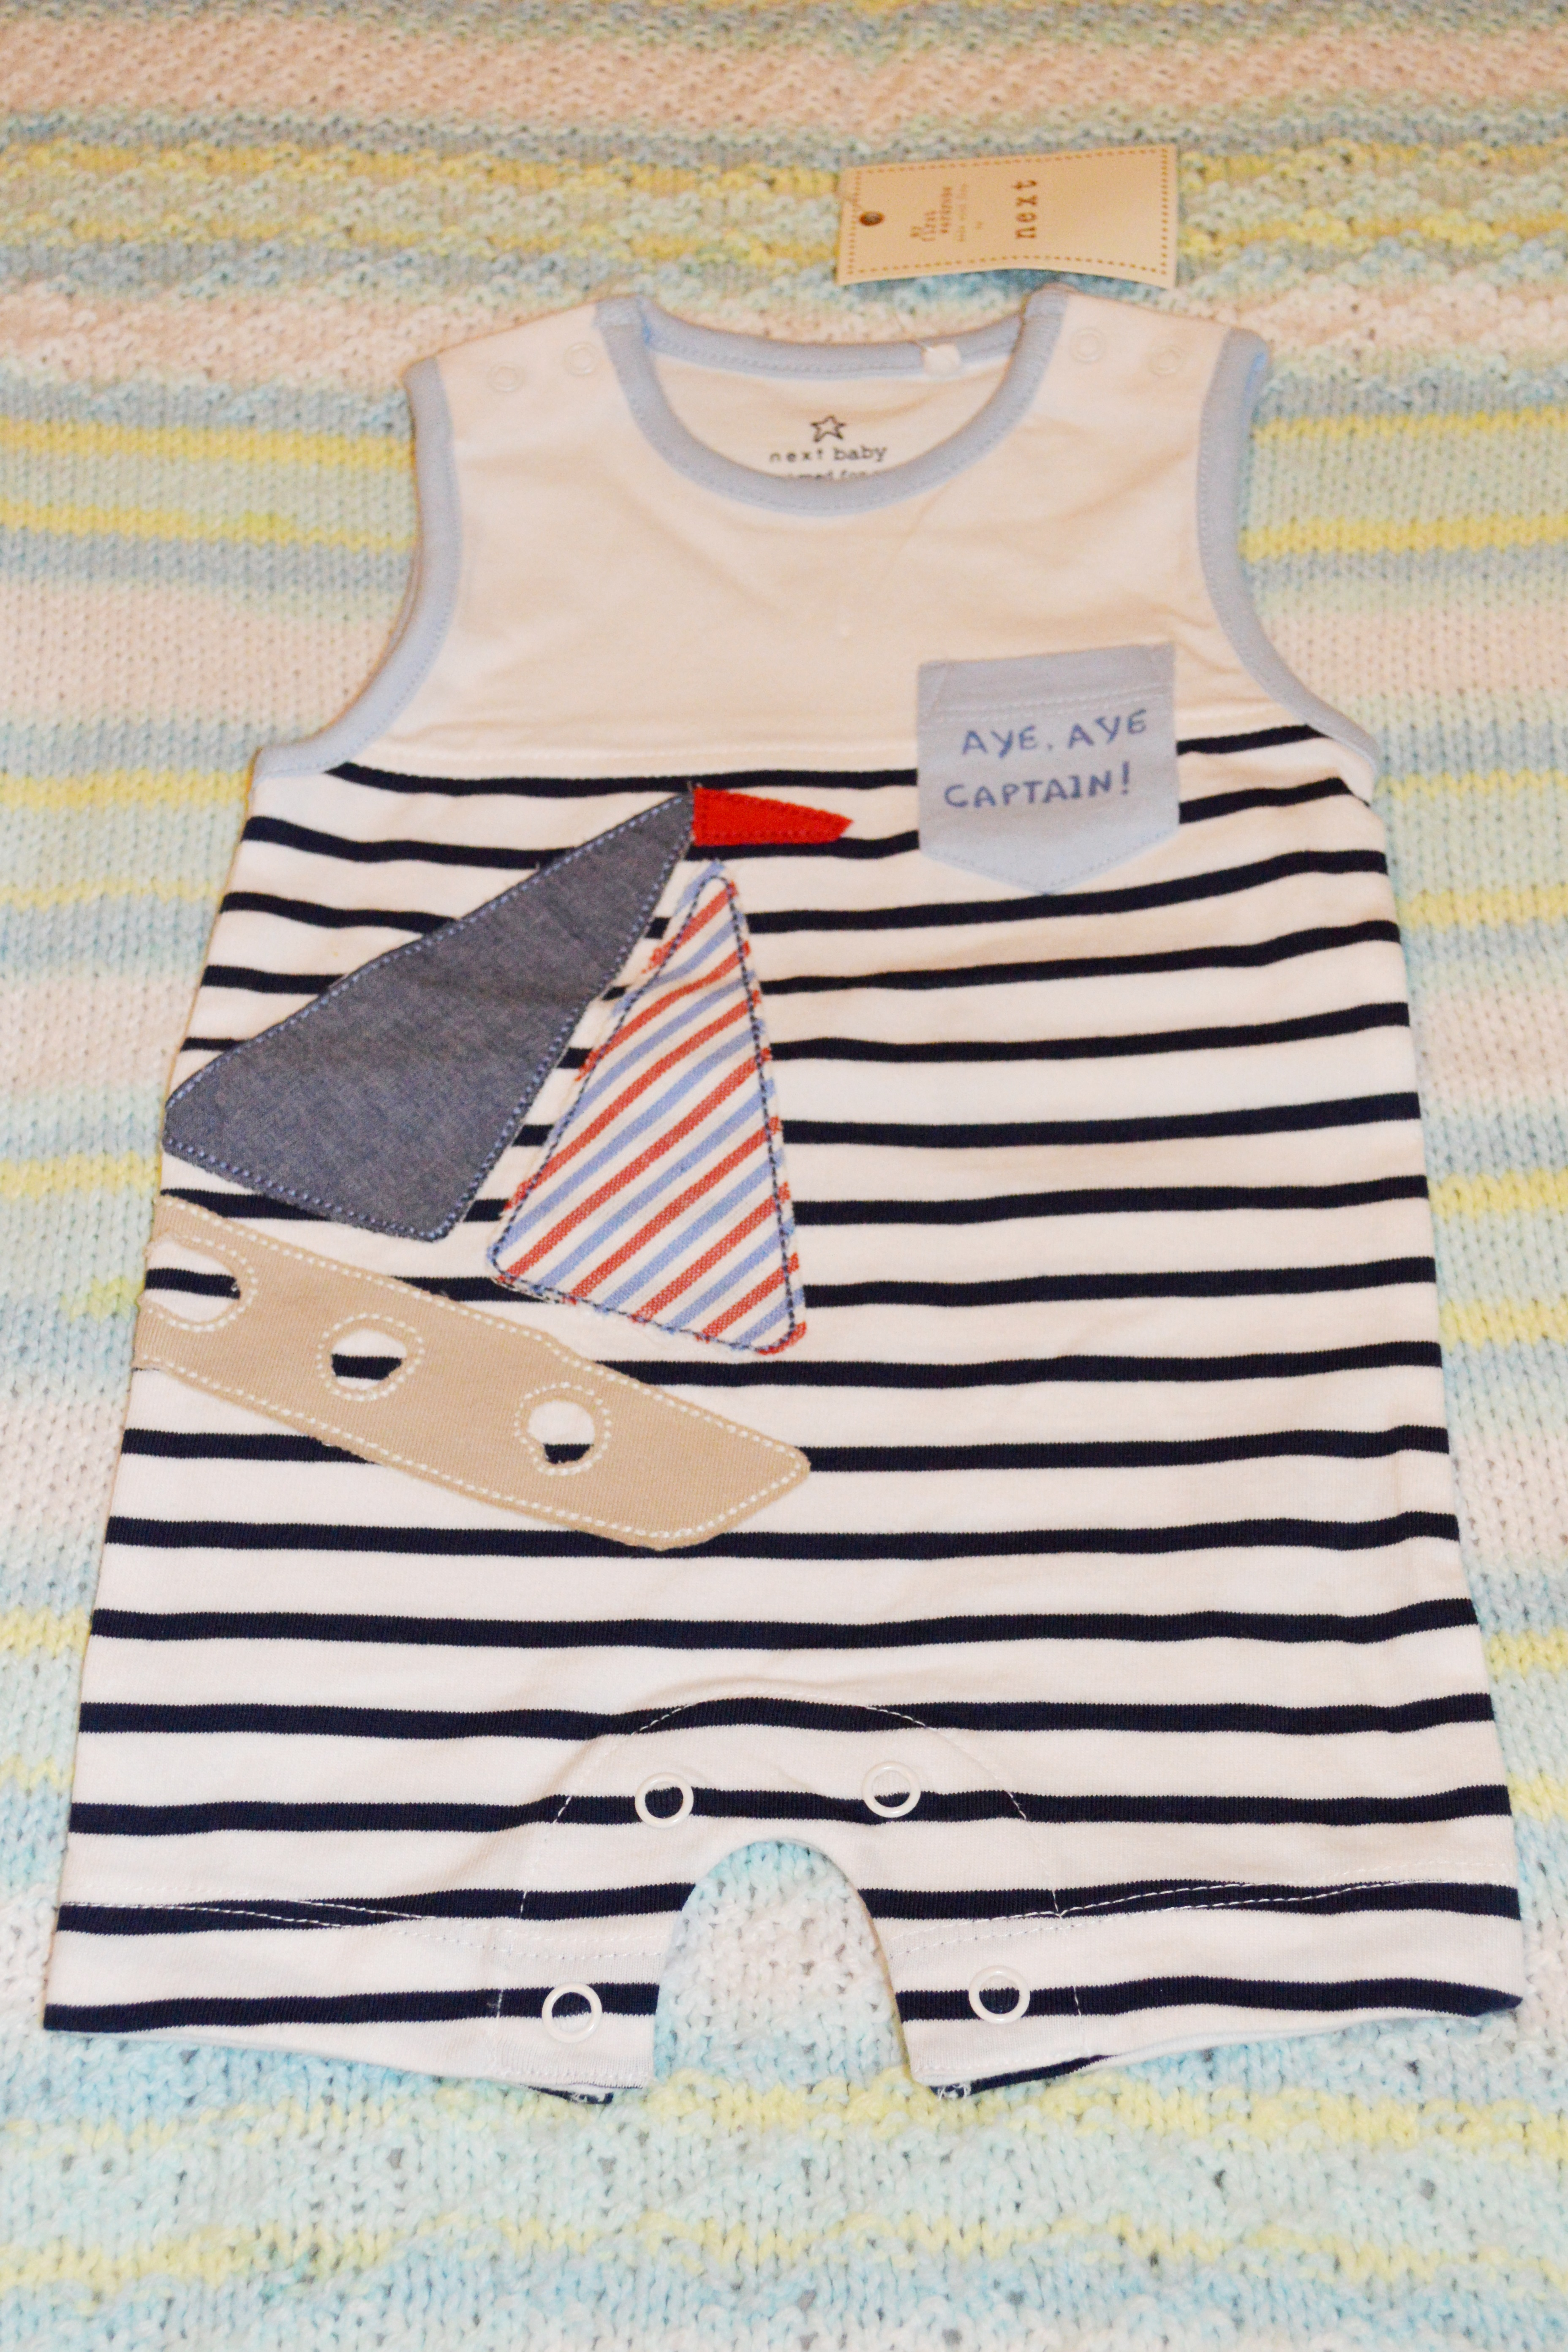 My first baby boy purchases - January sale bargains (15)